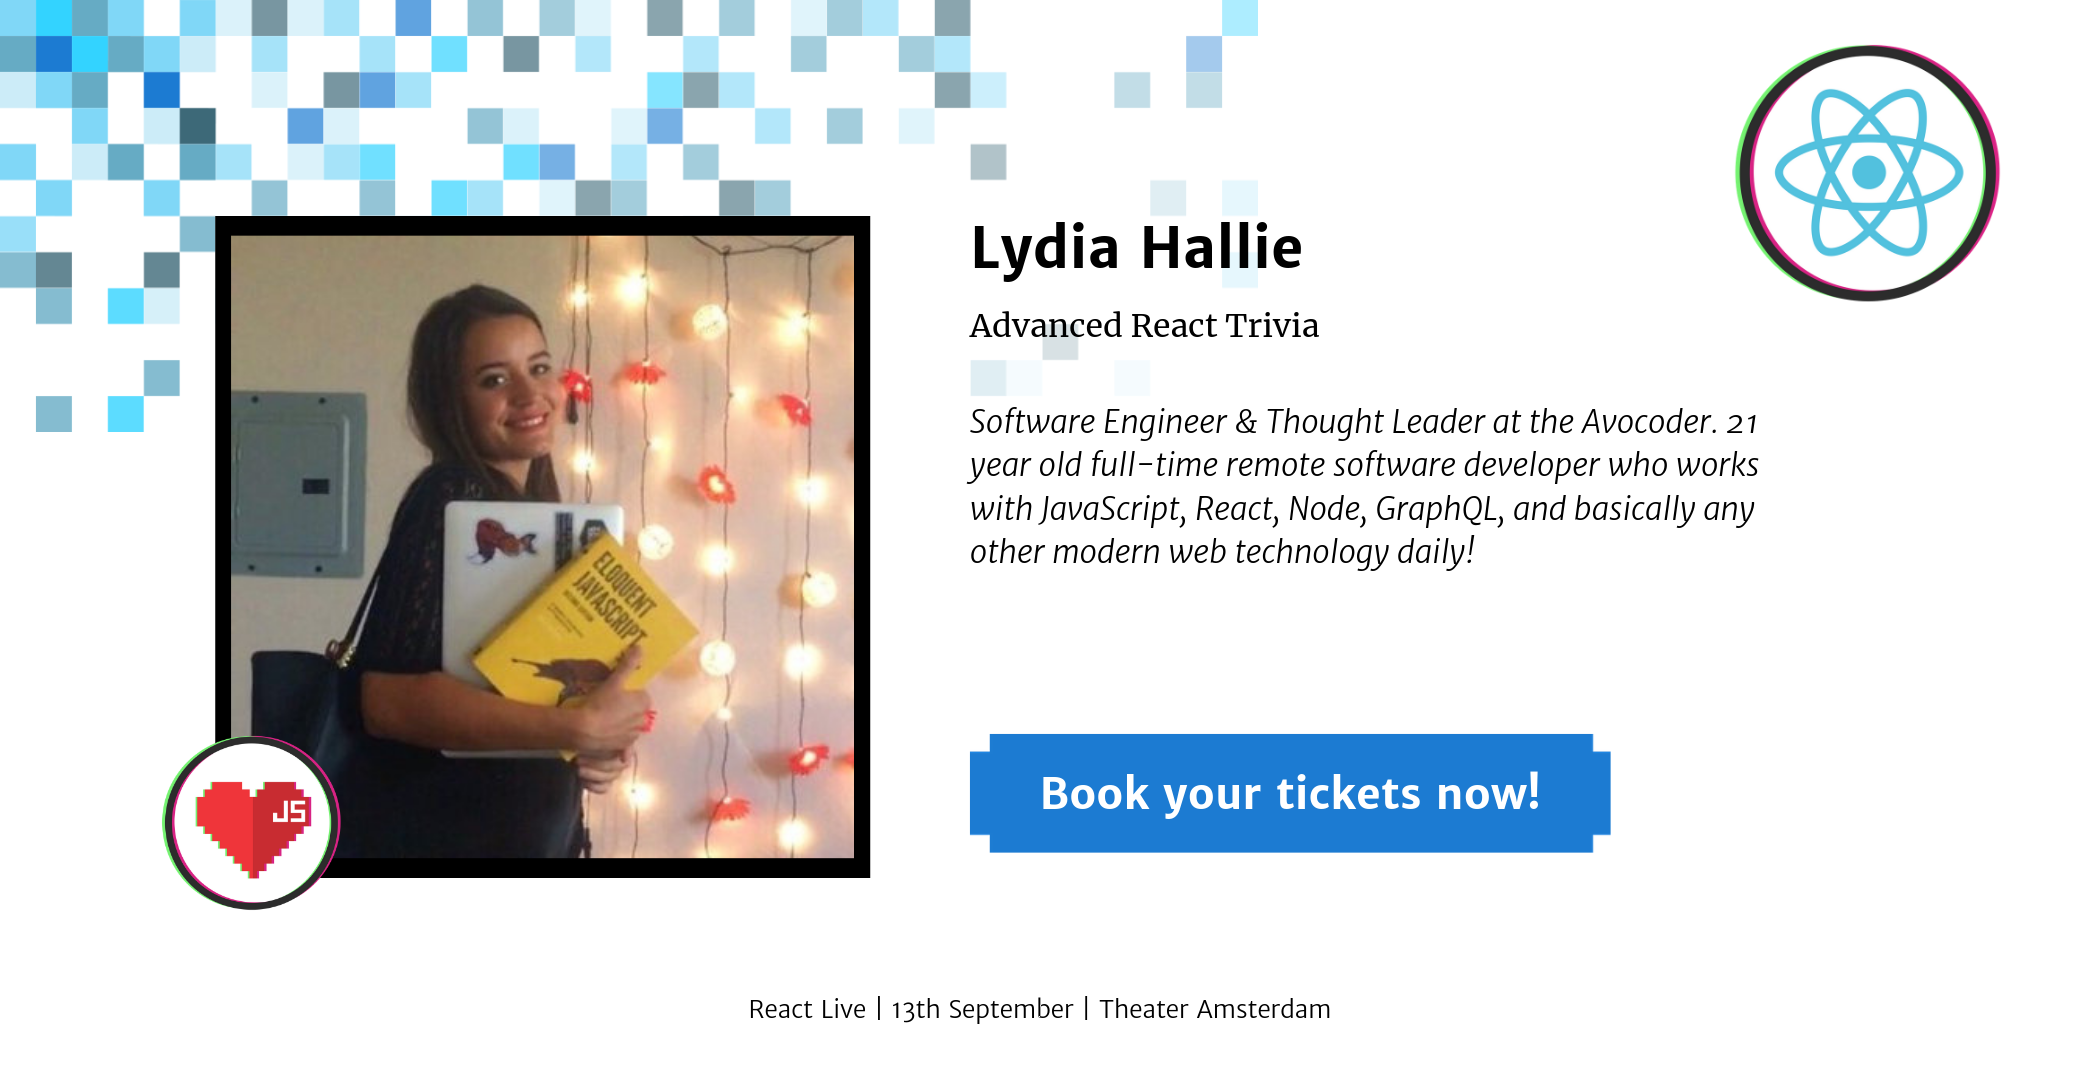 Lydia Hallie at React Live